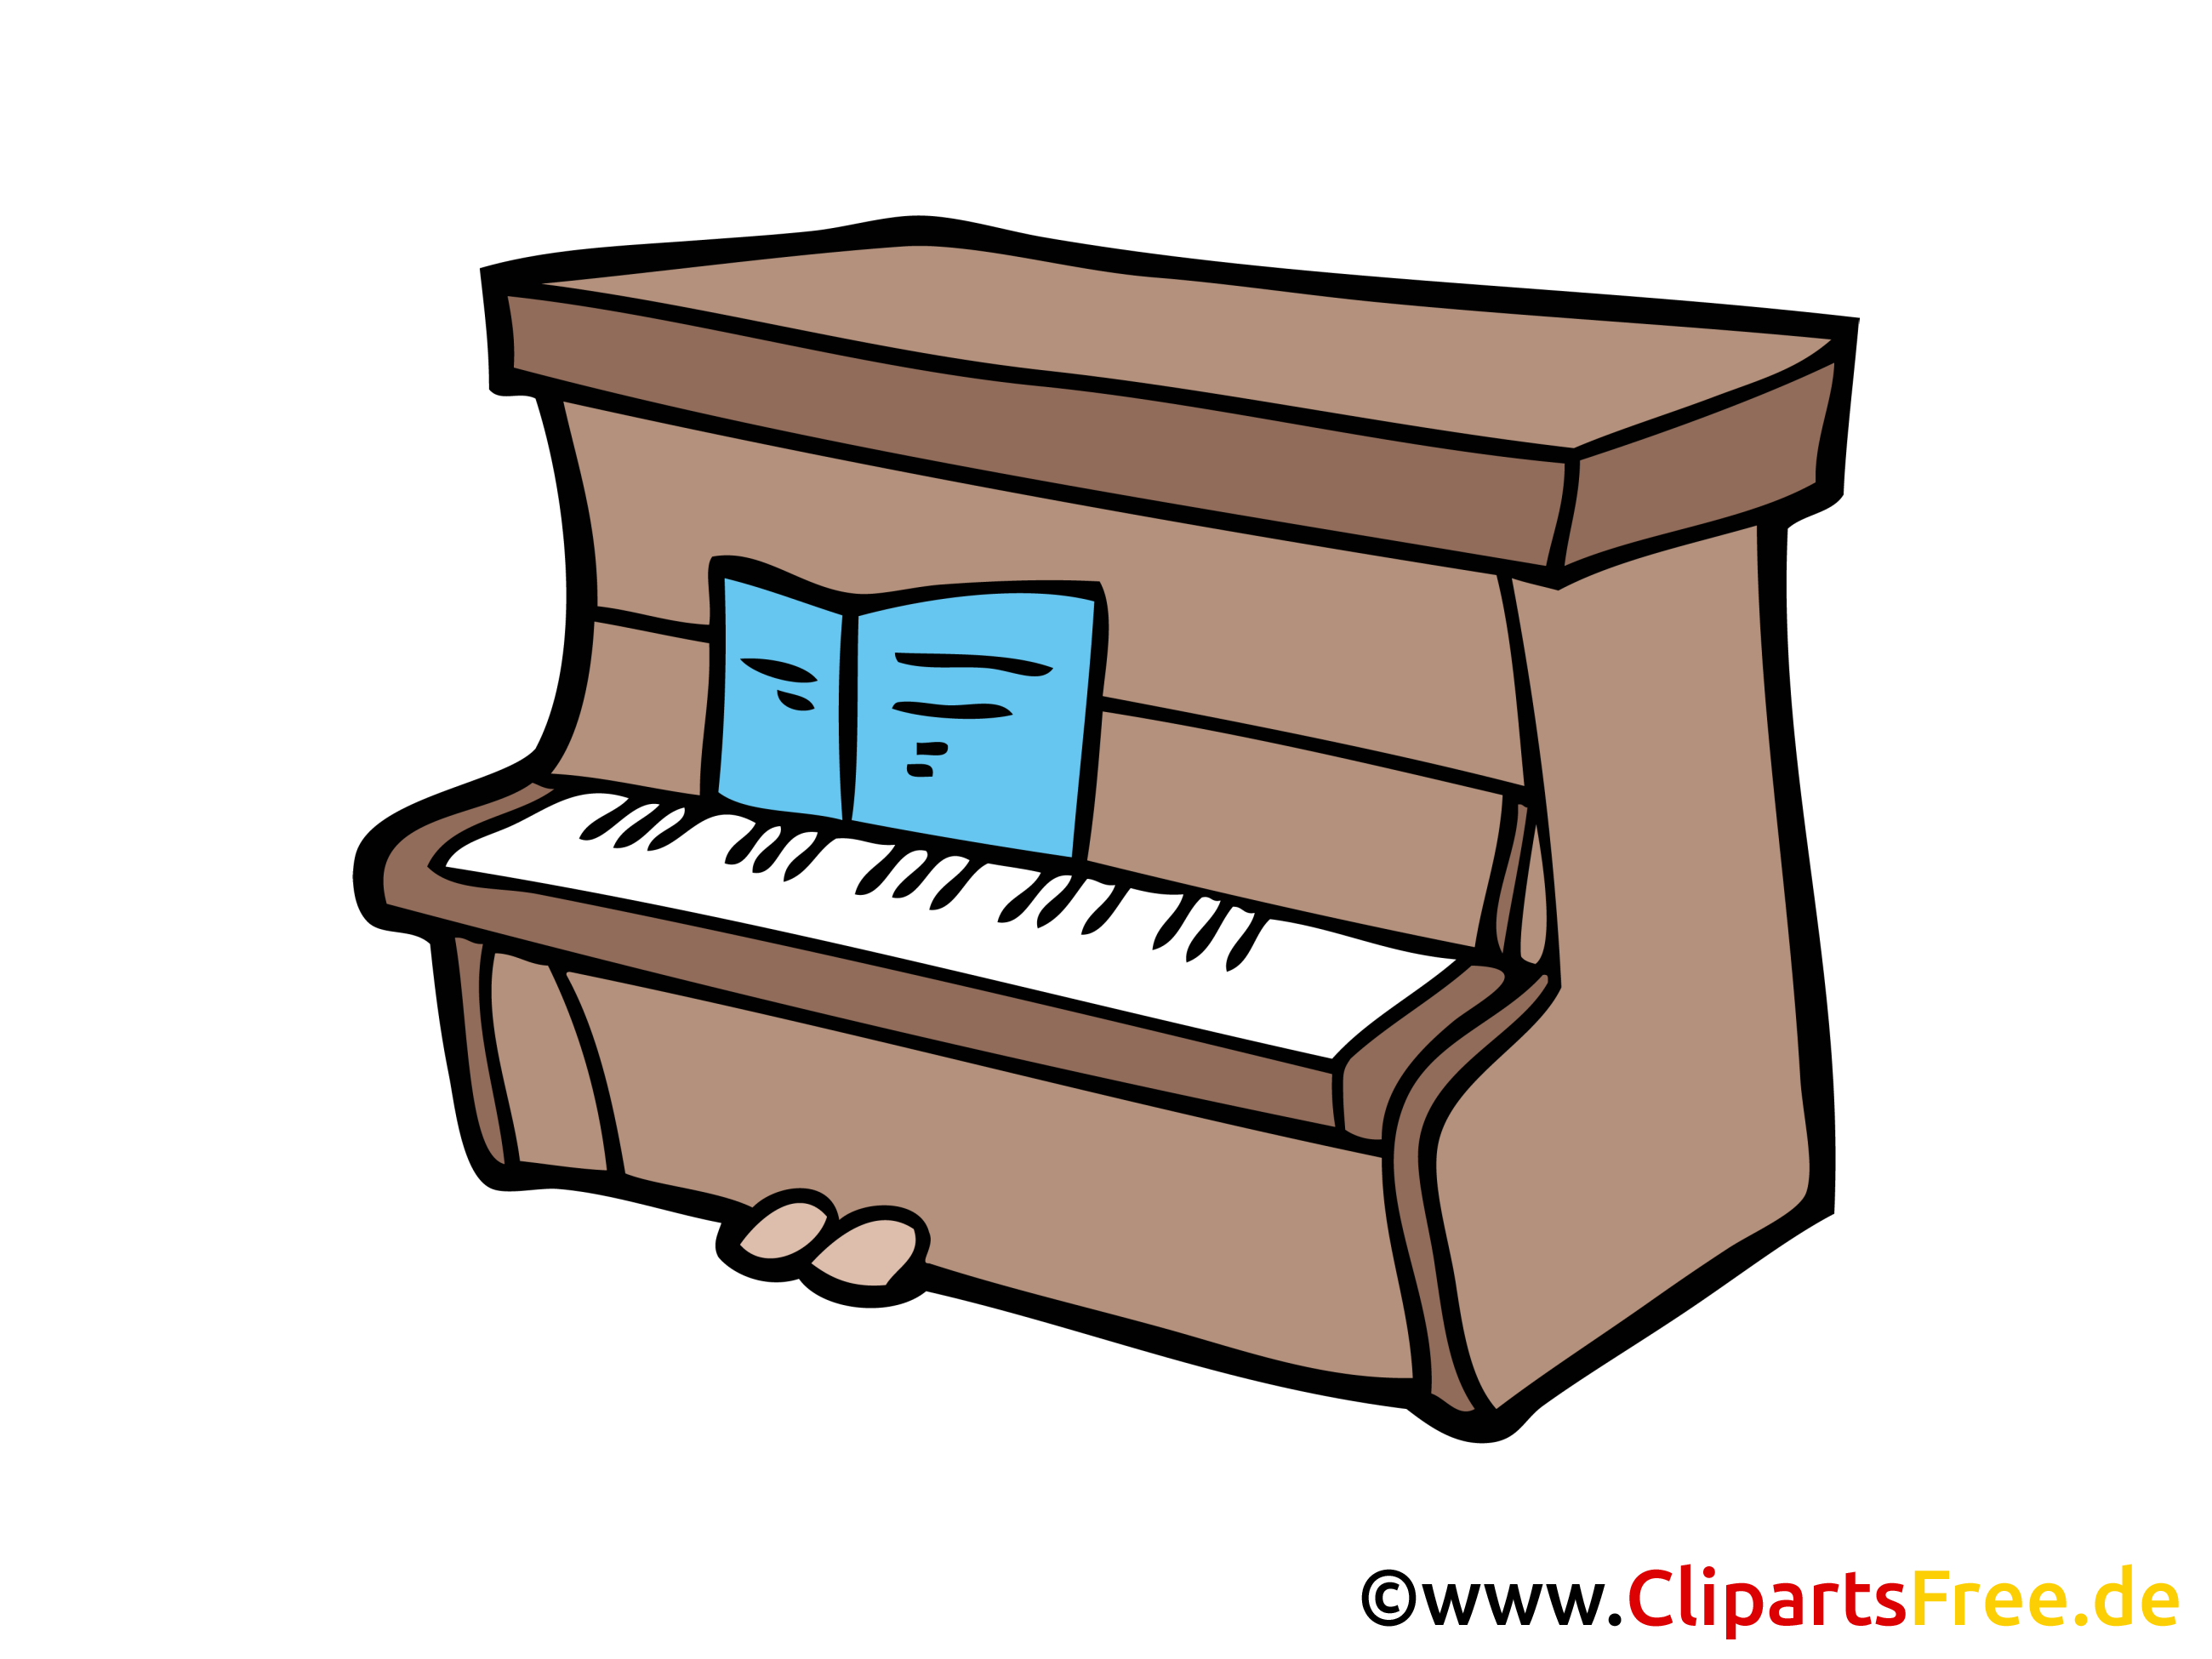 Clipart piano gratuit graphic freeuse Clipart piano gratuit - ClipartFox graphic freeuse